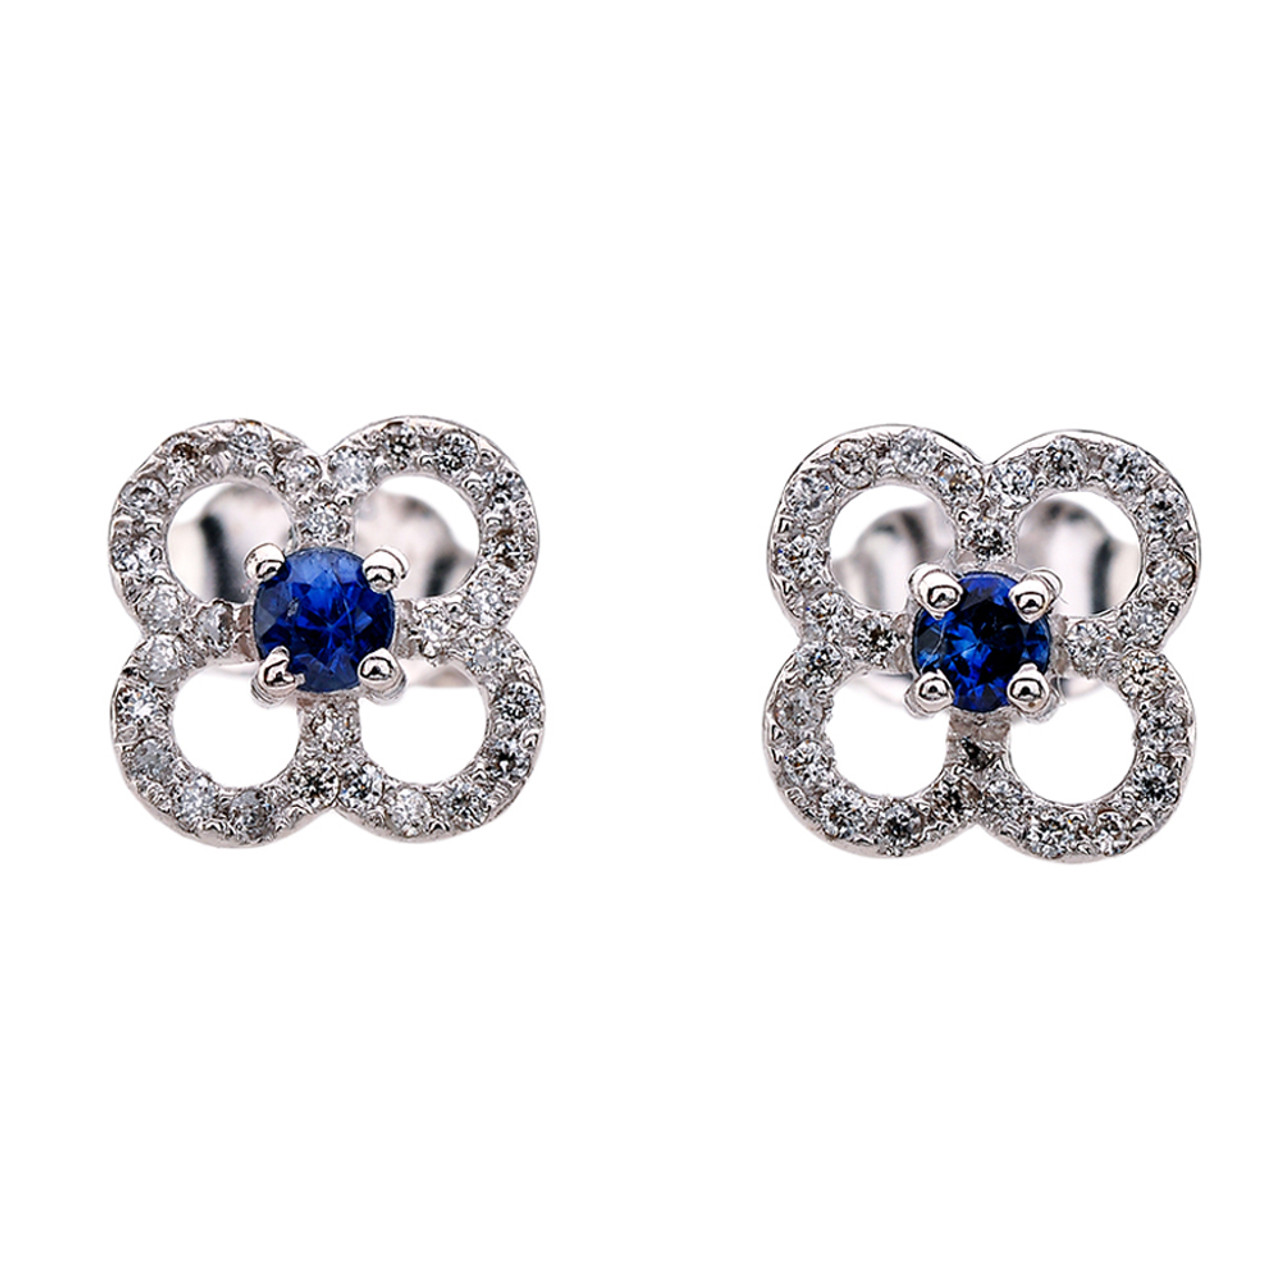 ae0ddeff61539 Diamond and Sapphire 4 Leaf Clover White Gold Stud Earrings